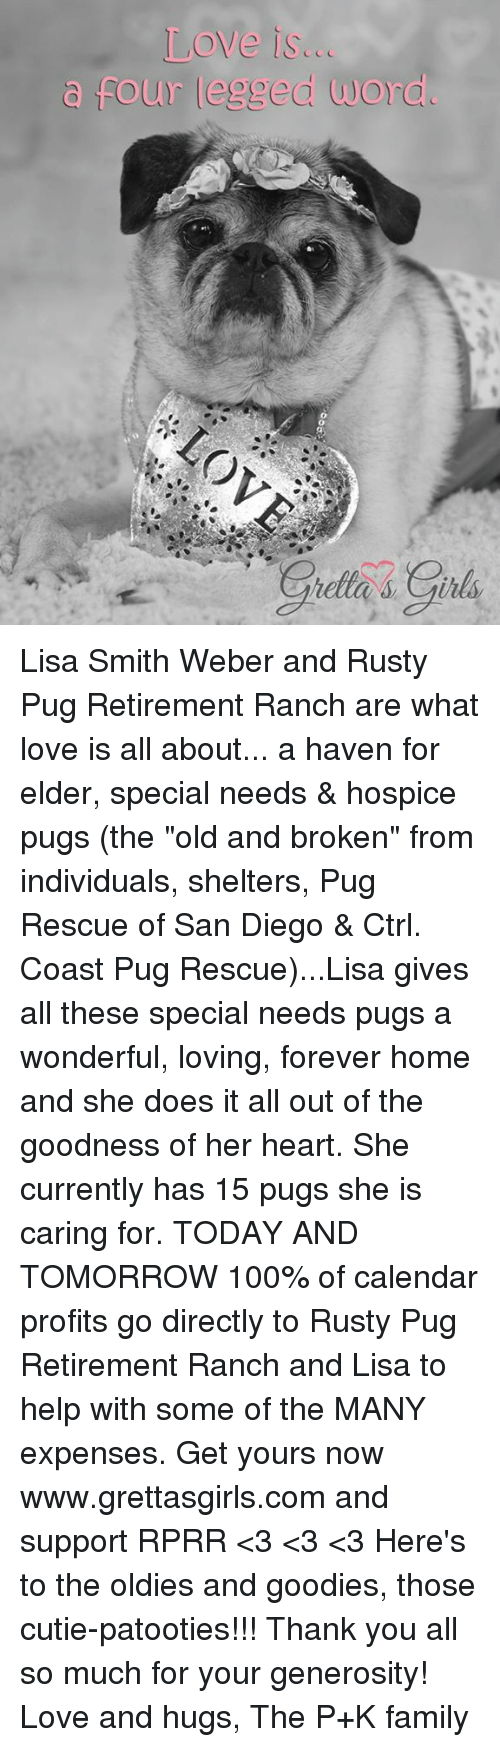 "hospice: Love is...  four legged word. Lisa Smith Weber and Rusty Pug Retirement Ranch are what love is all about... a haven for elder, special needs & hospice pugs (the ""old and broken"" from individuals, shelters, Pug Rescue of San Diego & Ctrl. Coast Pug Rescue)...Lisa gives all these special needs pugs a wonderful, loving, forever home and she does it all out of the goodness of her heart. She currently has 15 pugs she is caring for.   TODAY AND TOMORROW 100% of calendar profits go directly to Rusty Pug Retirement Ranch and Lisa to help with some of the MANY expenses. Get yours now www.grettasgirls.com and support RPRR <3 <3 <3 Here's to the oldies and goodies, those cutie-patooties!!!  Thank you all so much for your generosity! Love and hugs, The P+K family"